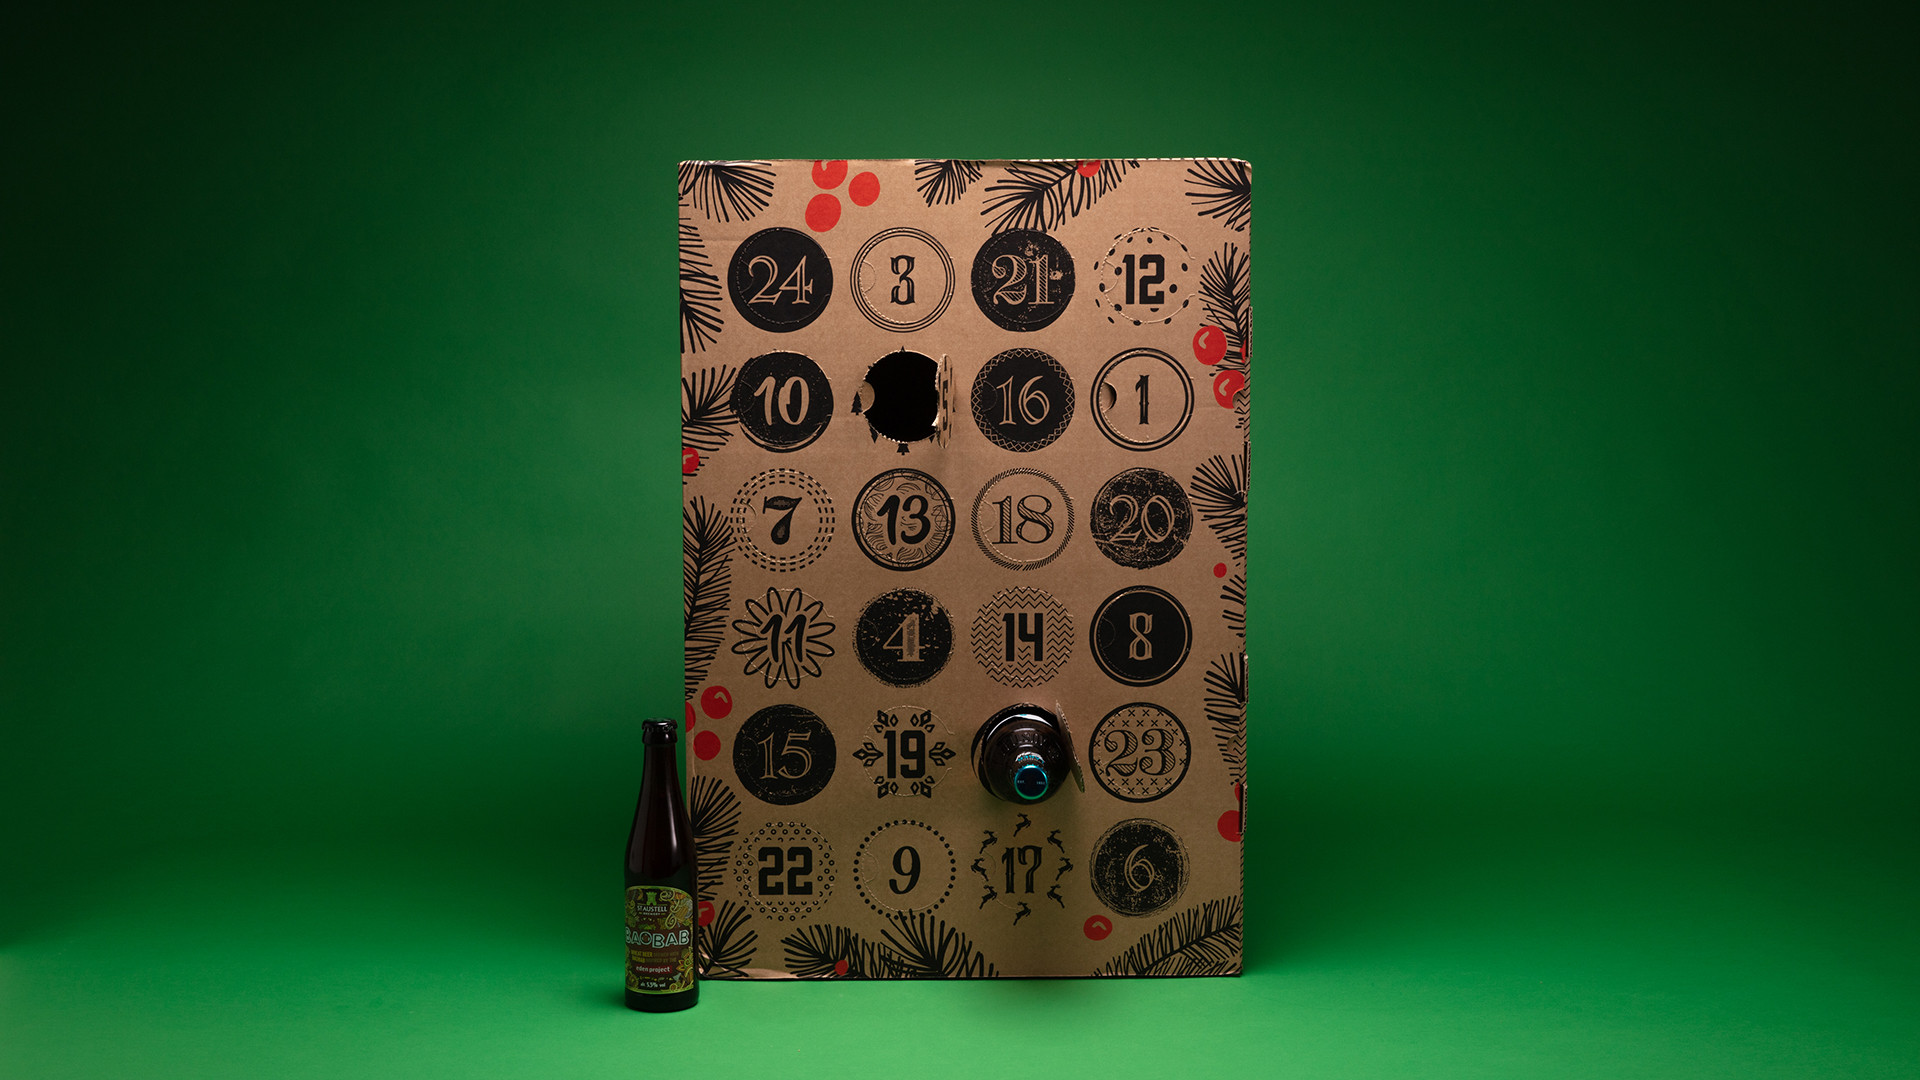 St Austell beer advent calendar, £73